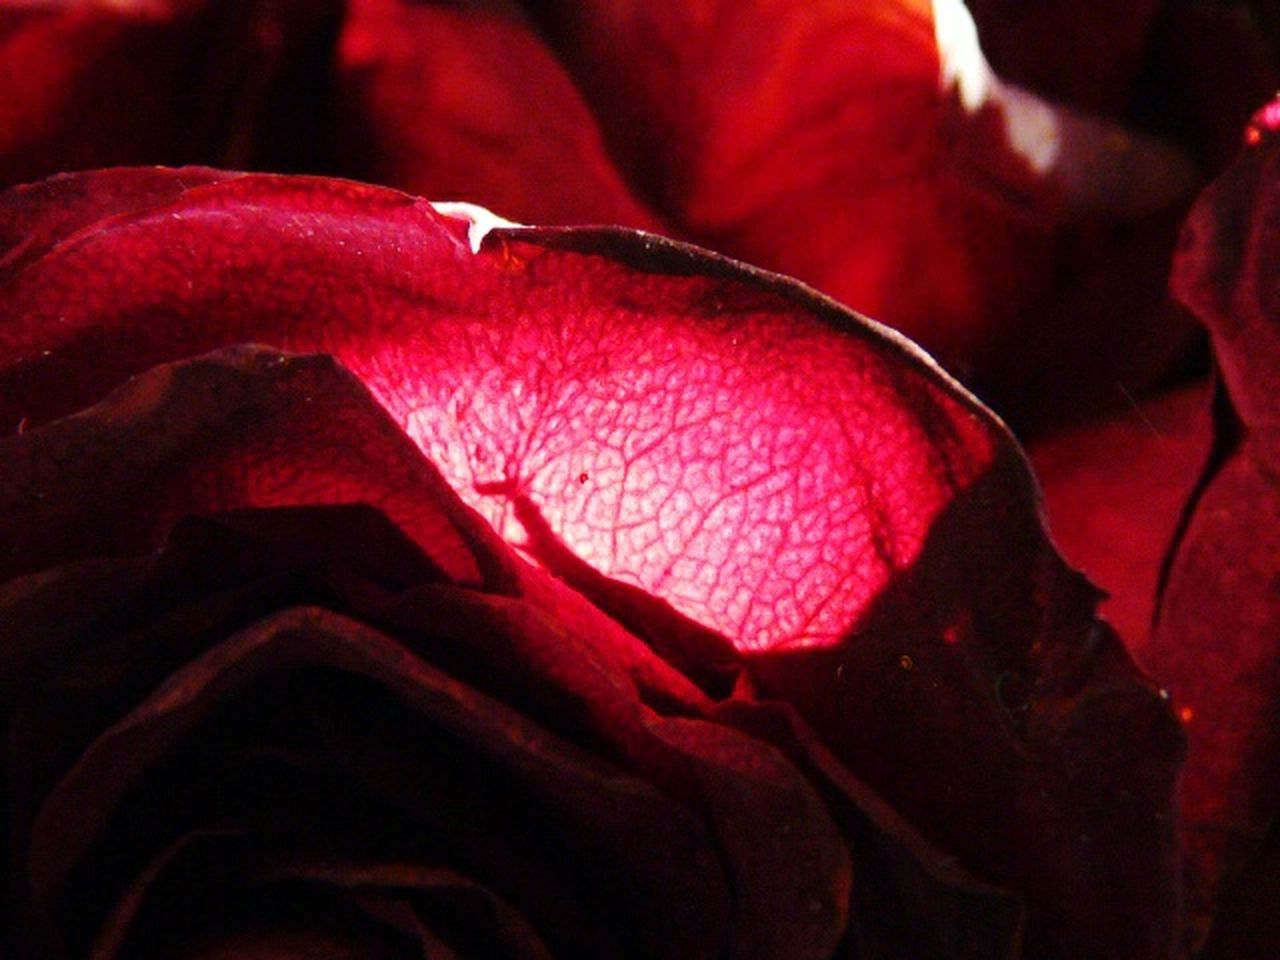 red, rose - flower, nature, flower, beauty in nature, petal, close-up, fragility, no people, night, flower head, outdoors, freshness